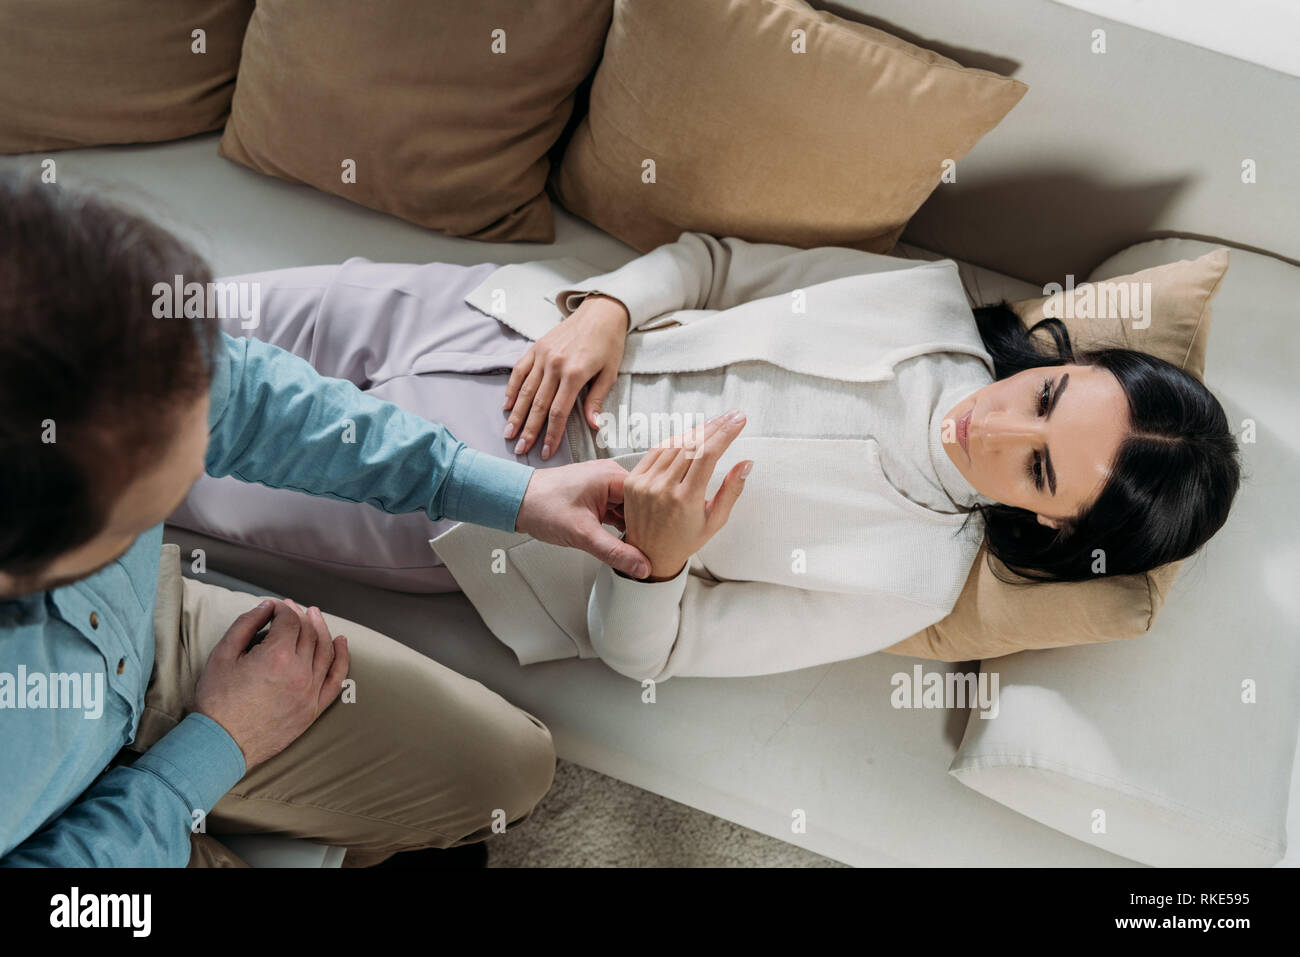 overhead view of hypnotist holding wrist of young woman lying in couch - Stock Image